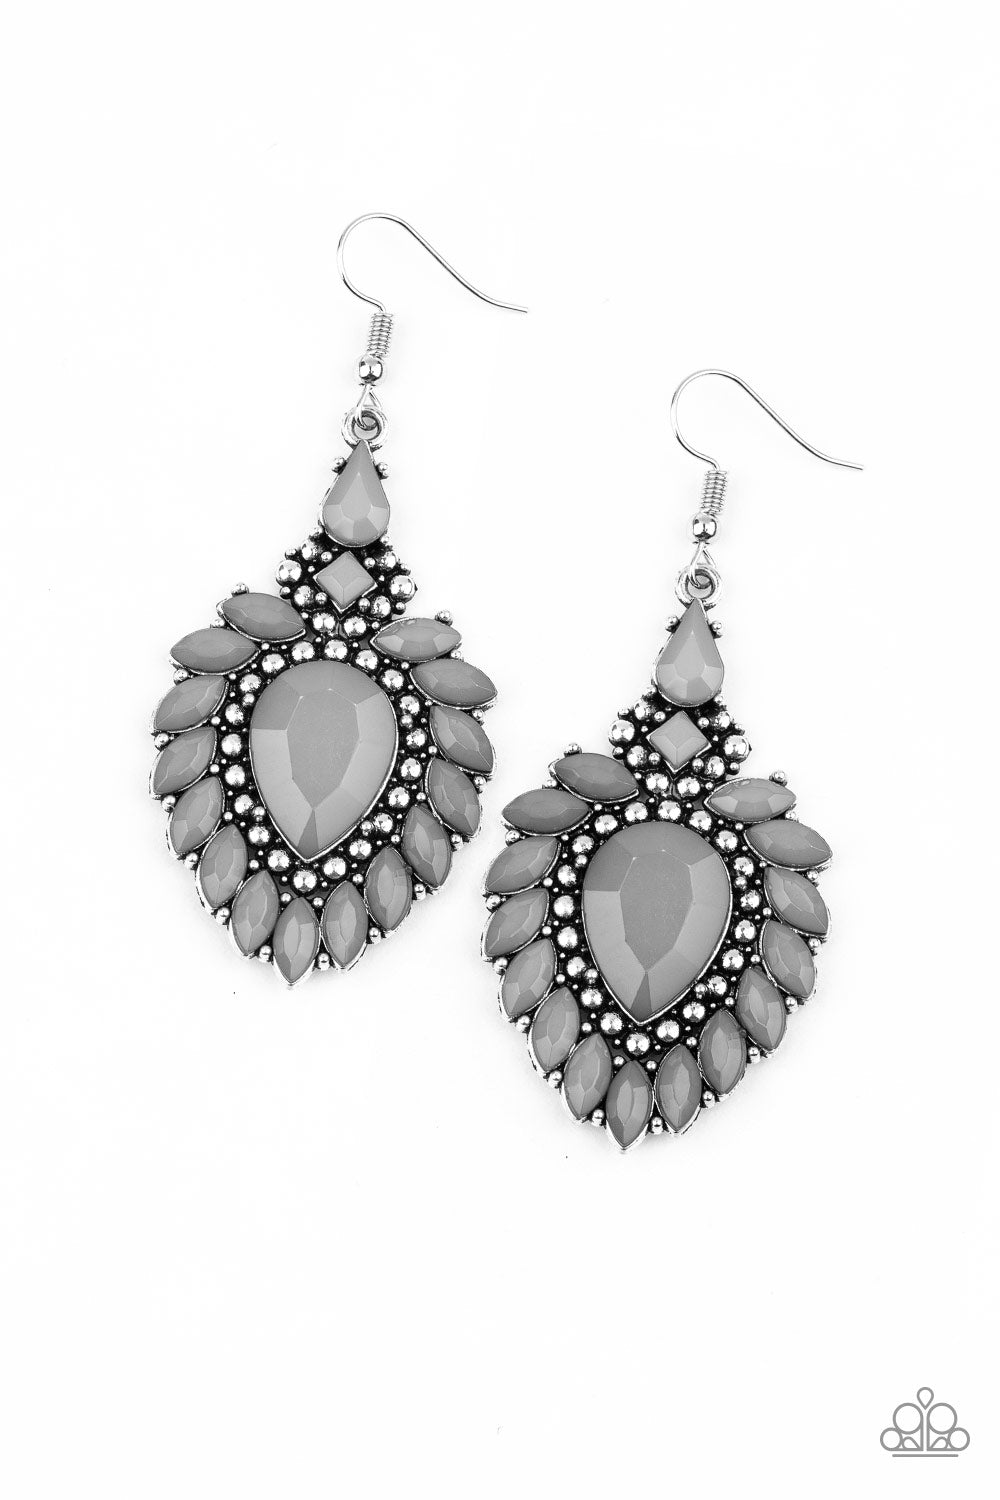 The LIONESS Den Silver Paparazzi Earrings